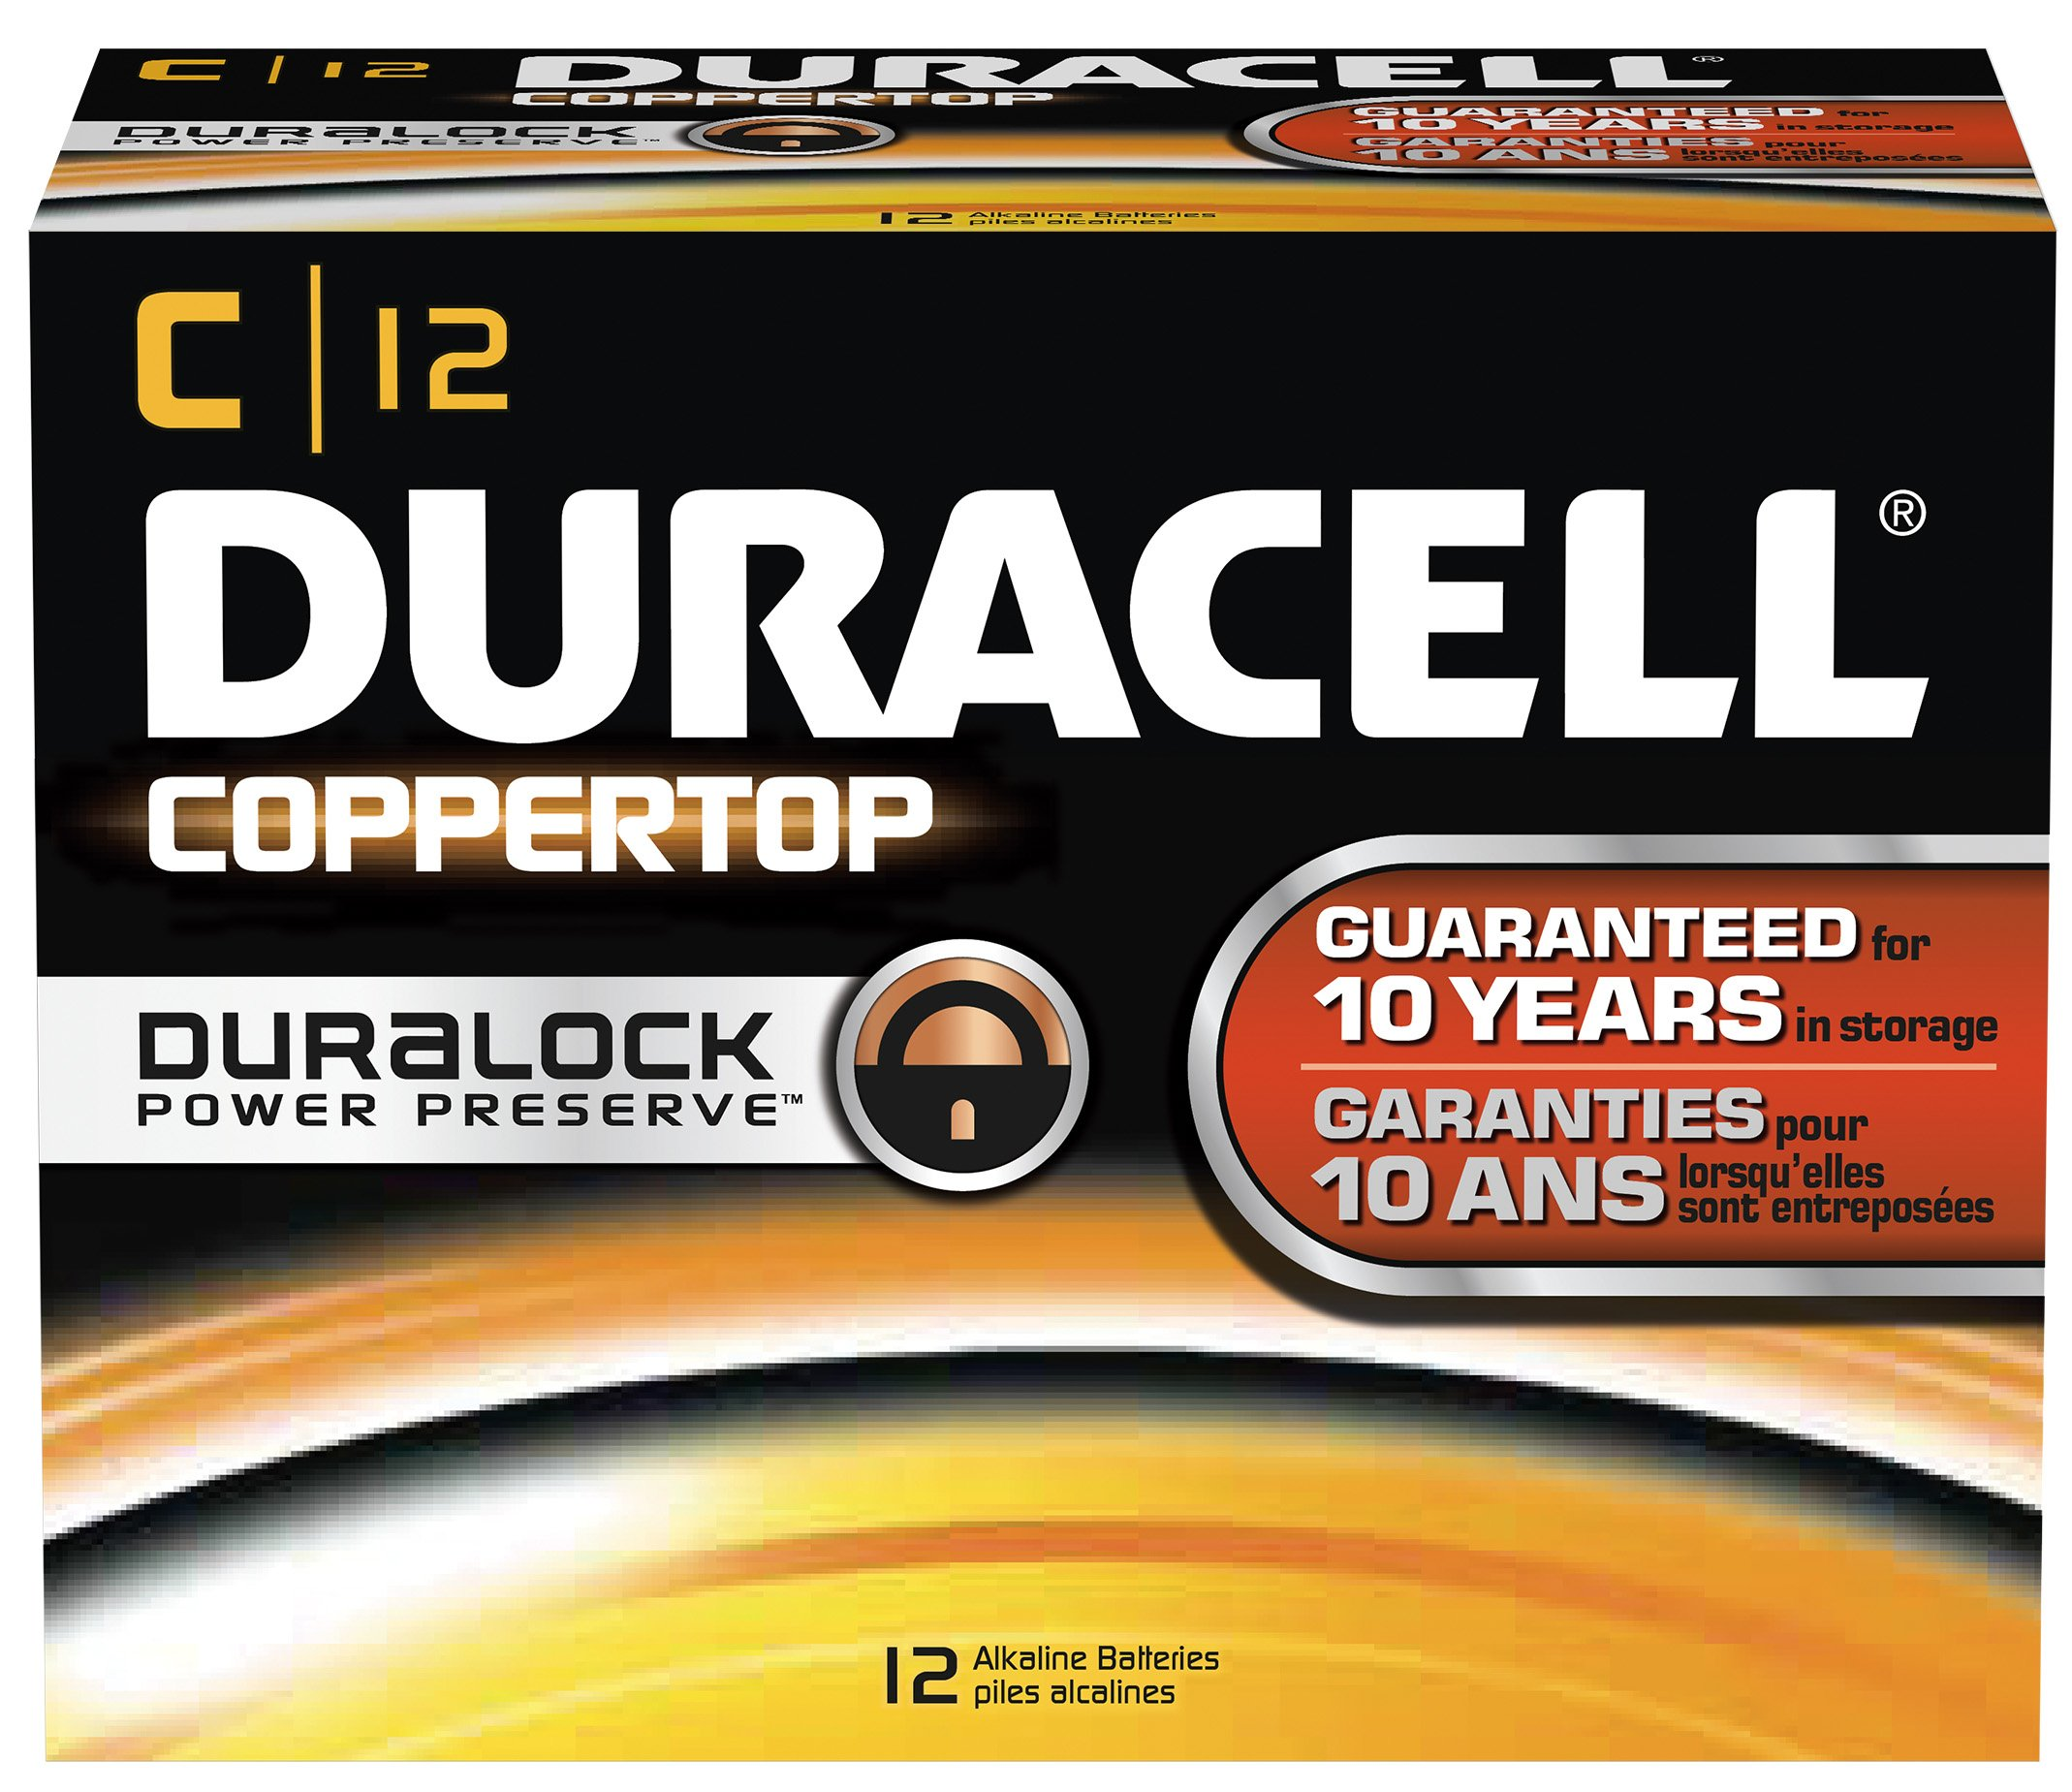 Duracell MN1400 CopperTop Alkaline-Manganese Dioxide Battery, C Size, 1.5V (Case of 72)